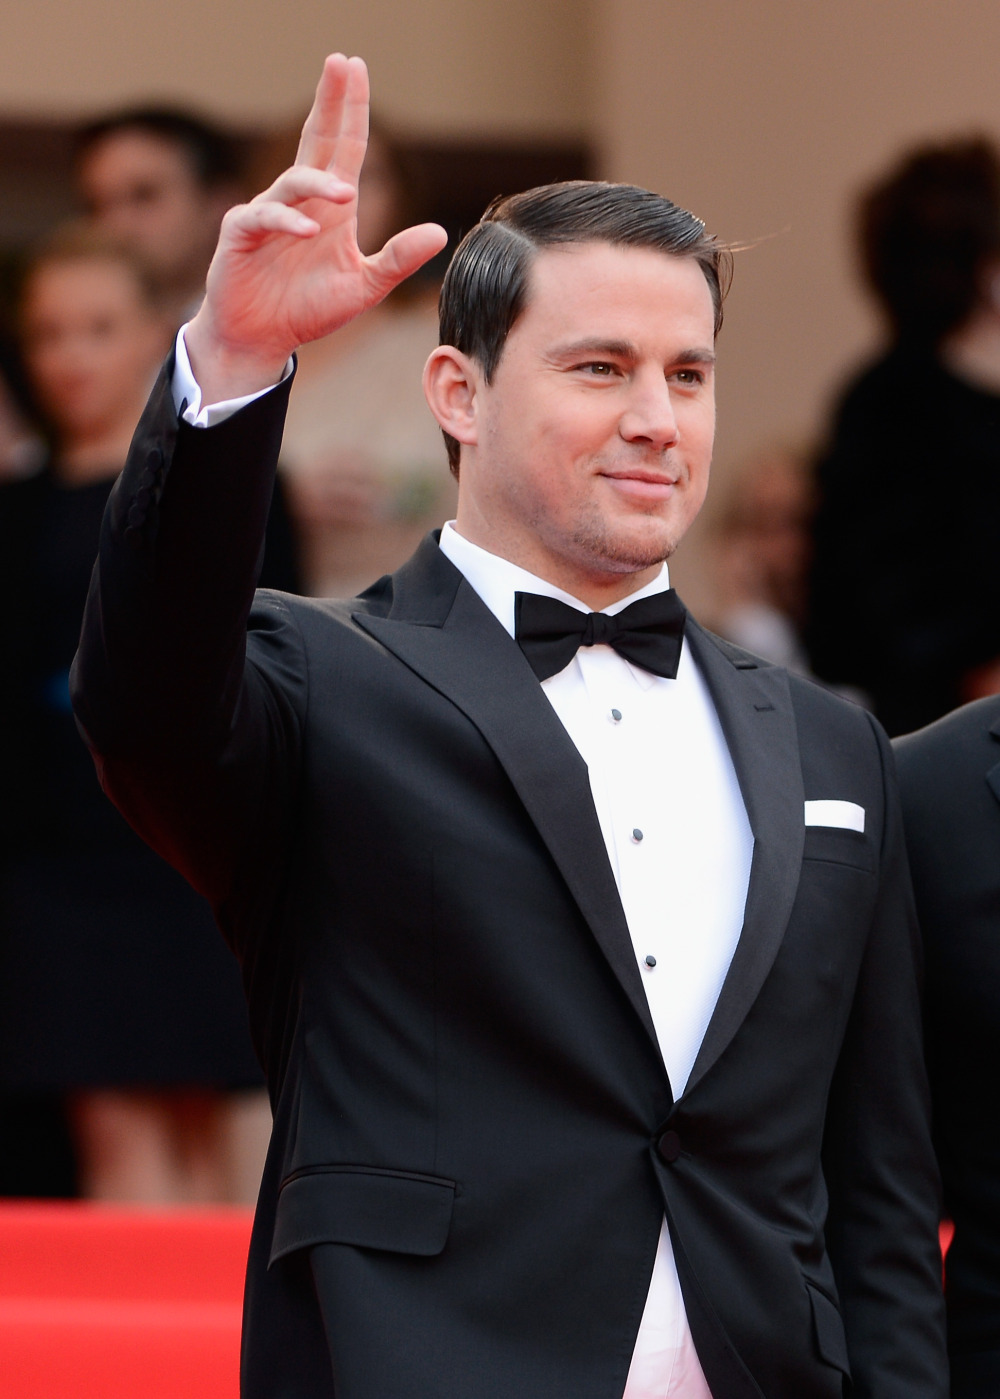 "CANNES, FRANCE - MAY 19: Channing Tatum attends the ""Foxcatcher"" premiere during the 67th Annual Cannes Film Festival on May 19, 2014 in Cannes, France. (Photo by Ian Gavan/Getty Images) ORG XMIT: 488649955 ORIG FILE ID: 492304937"